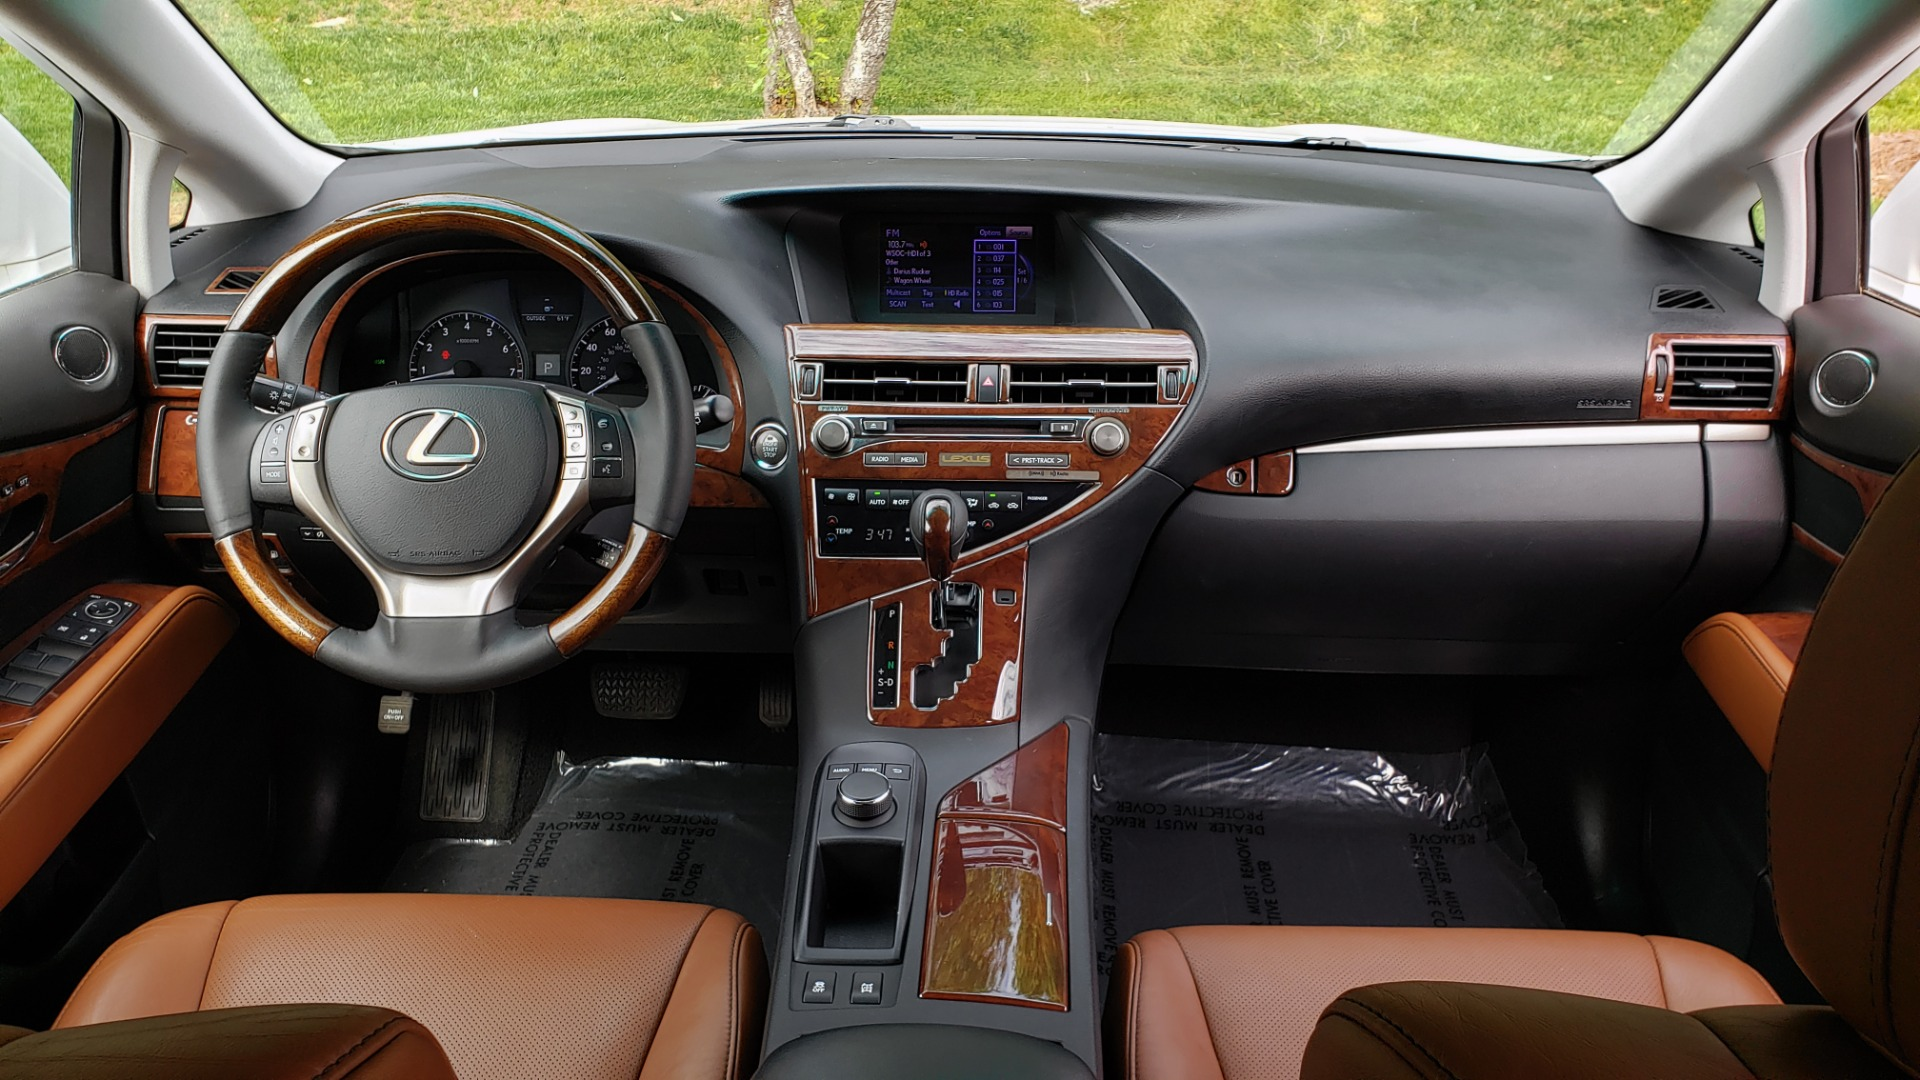 Used 2013 Lexus RX 350 PREMIUM PKG / SUNROOF / BSM / PARK ASST / REARVIEW for sale Sold at Formula Imports in Charlotte NC 28227 77